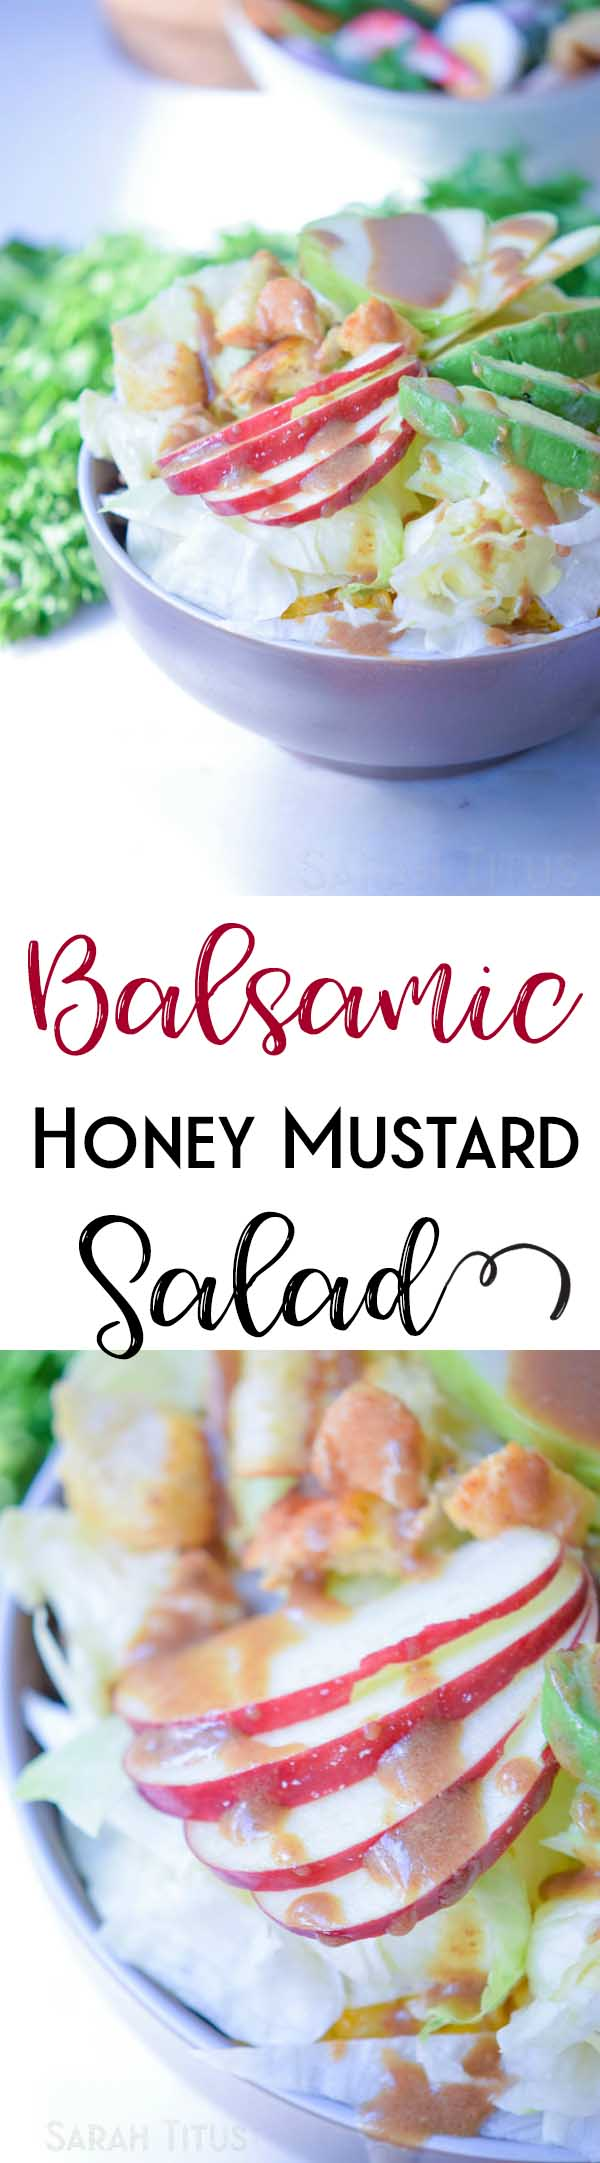 The crisp crunchy apples, smooth avocado, and tangy balsamic honey mustard dressing makes a delicious combination of flavors in this Balsamic Honey Mustard Salad.